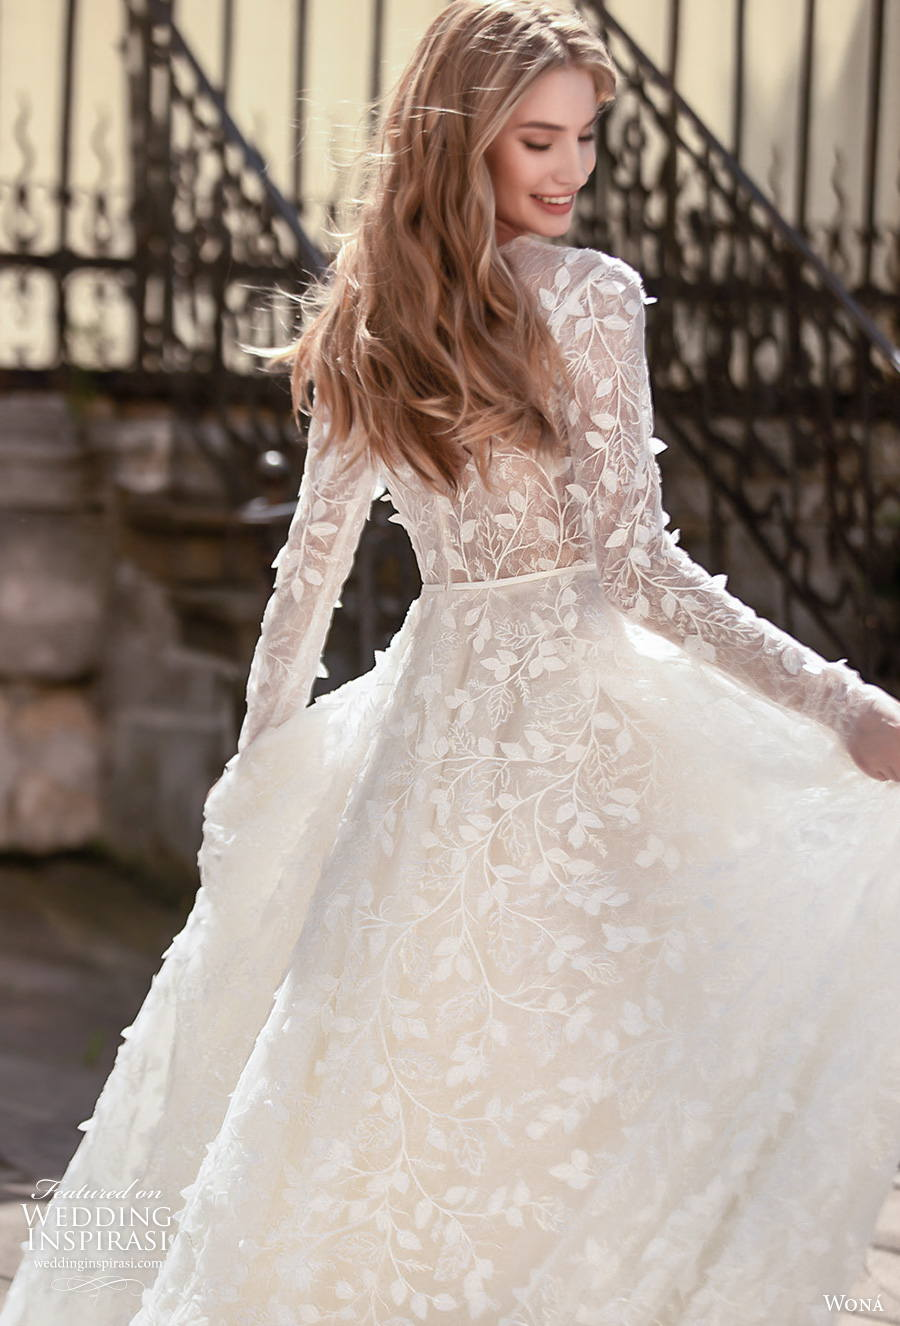 wona concept 2021 romance bridal long sleeves jewel neck full embellishment romantic modest a  line wedding dress covered lace back chapel train (6) zbv